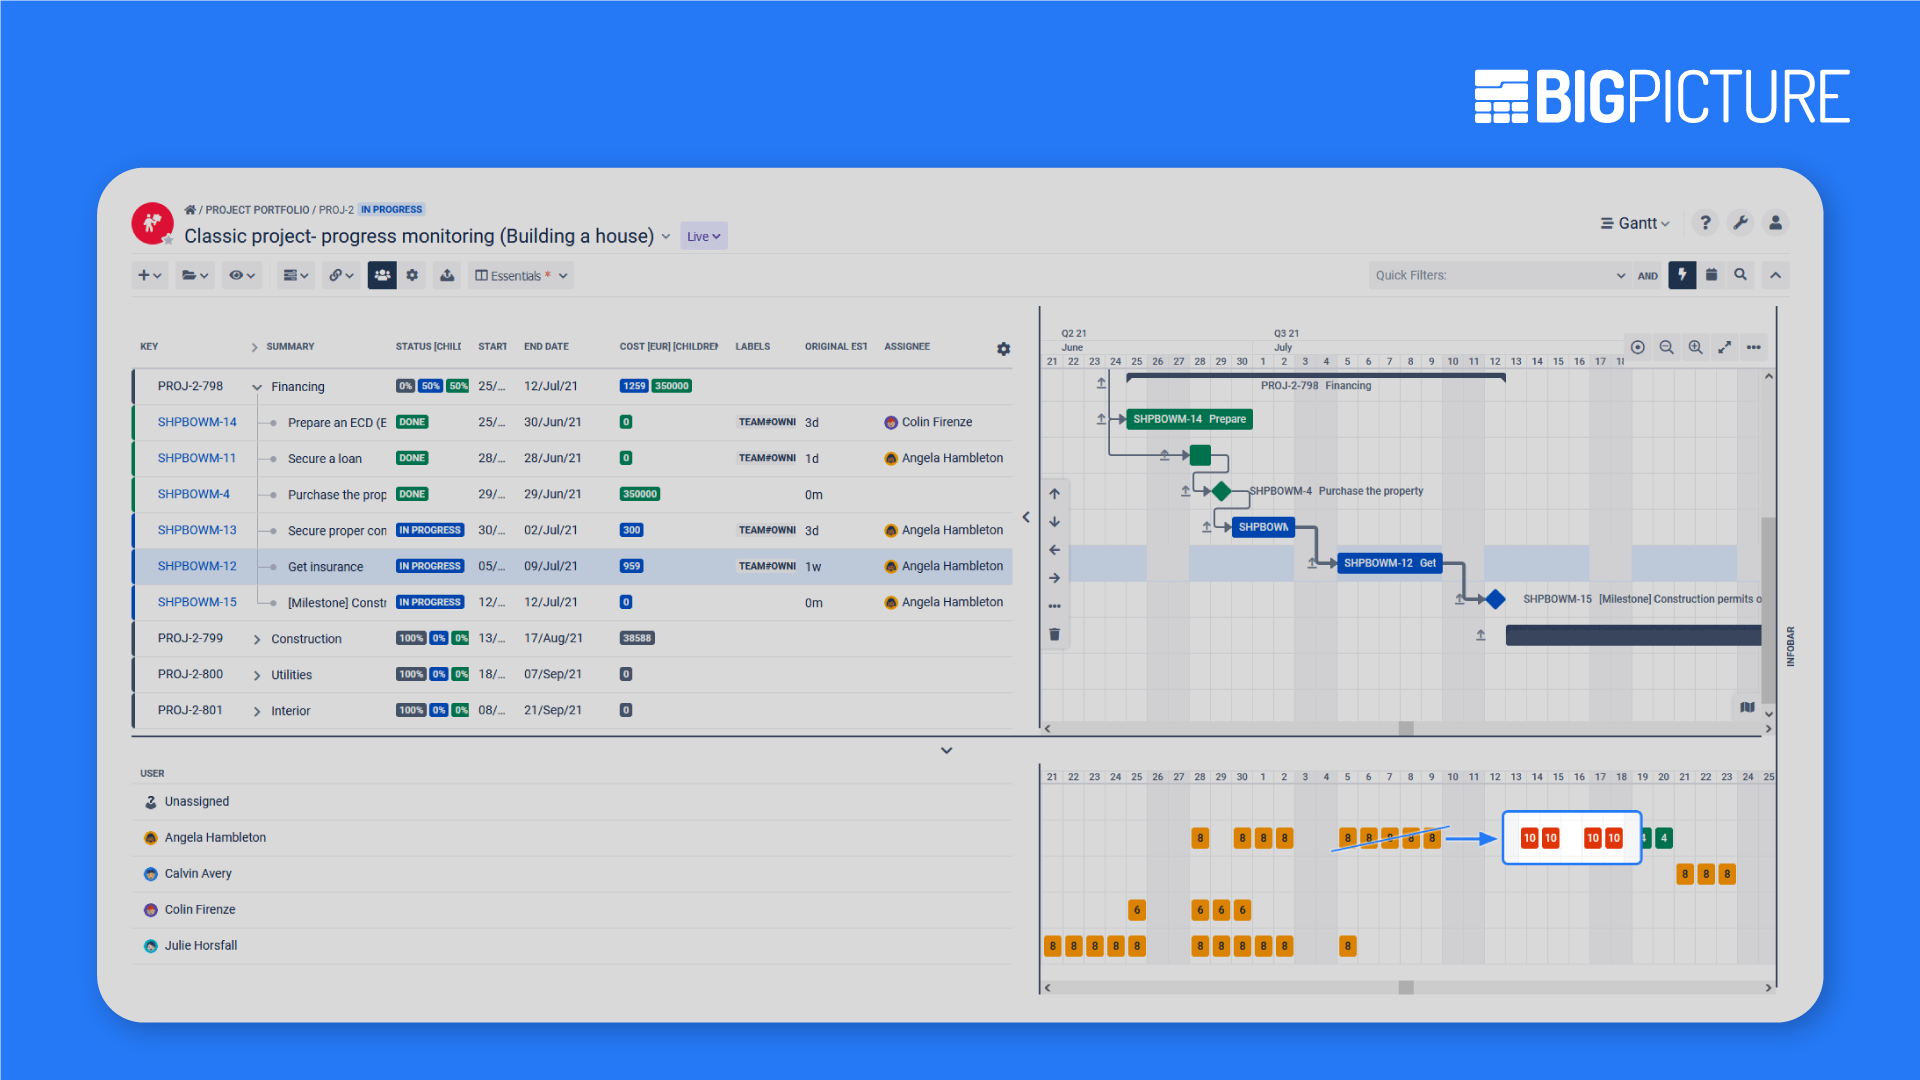 Absence impact on Gantt schedule and resources